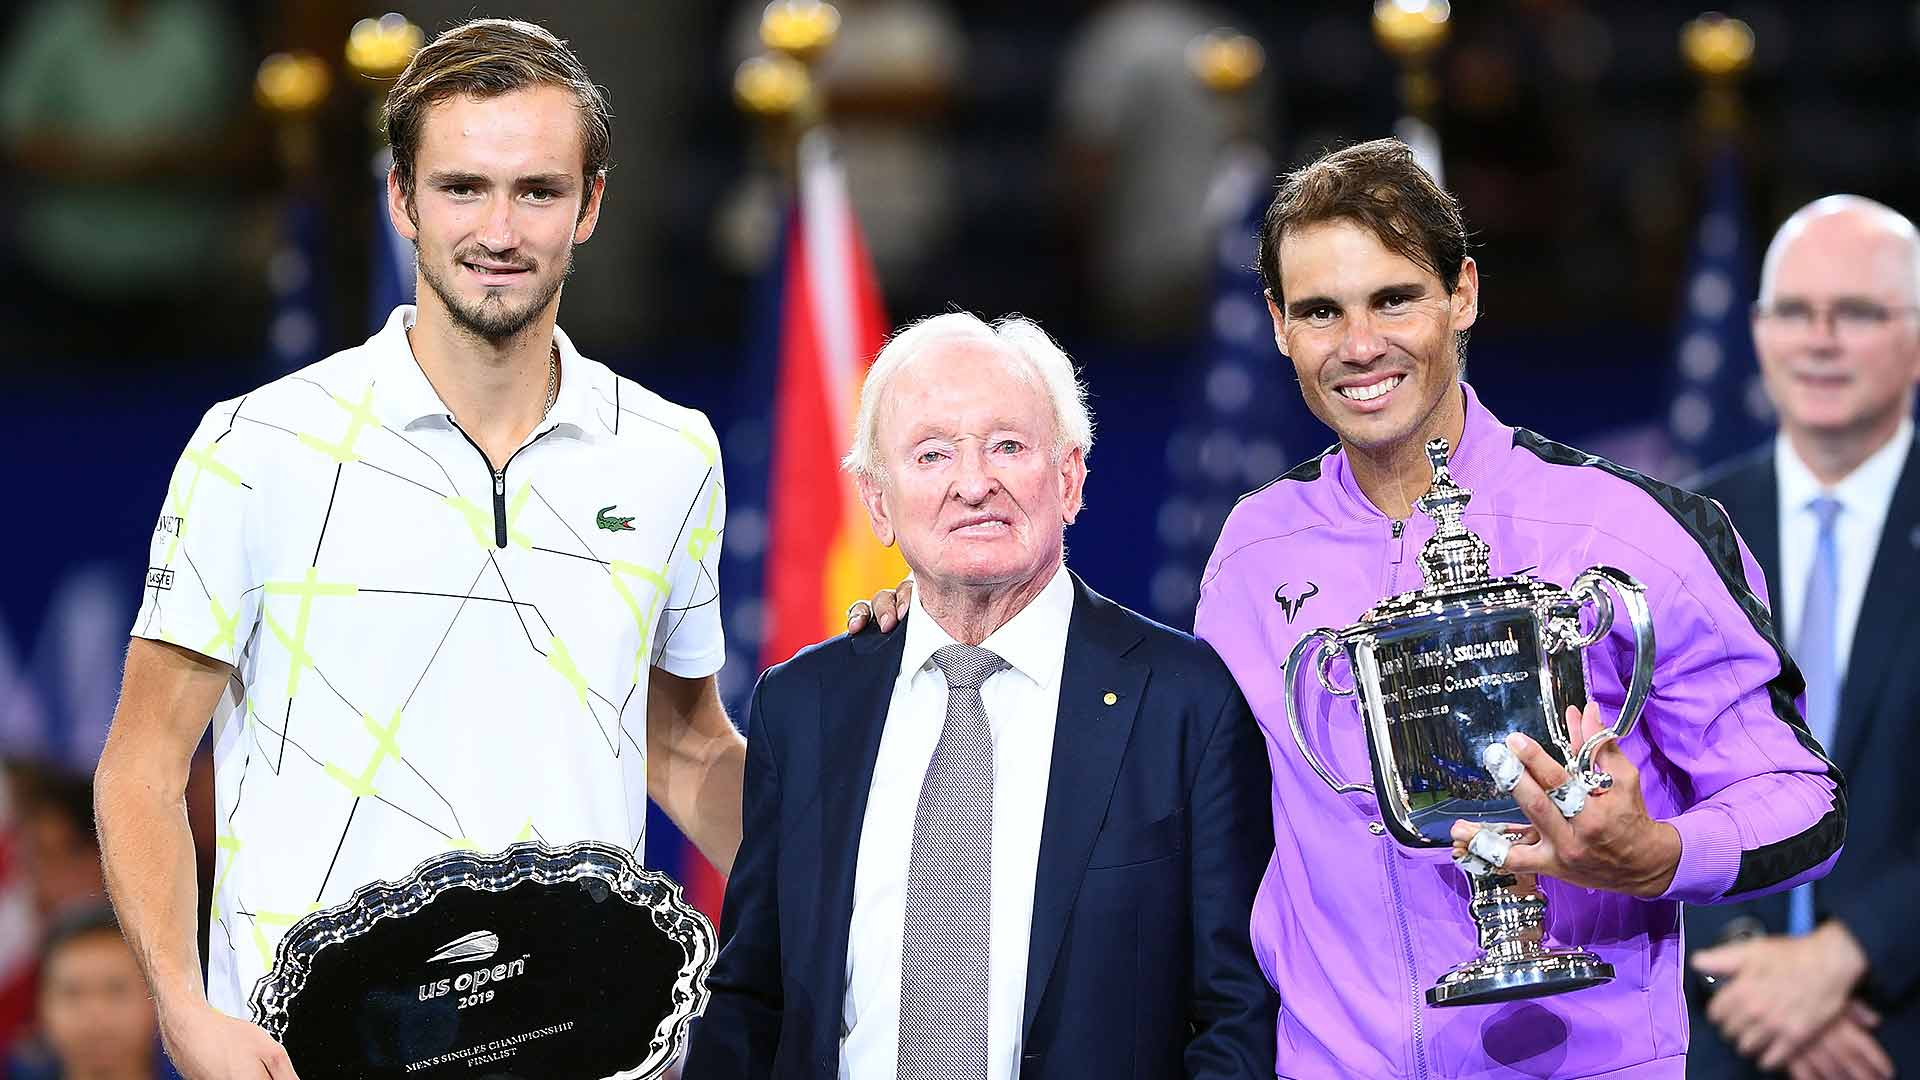 Daniil Medvedev, Rod Laver and Rafael Nadal at the US Open